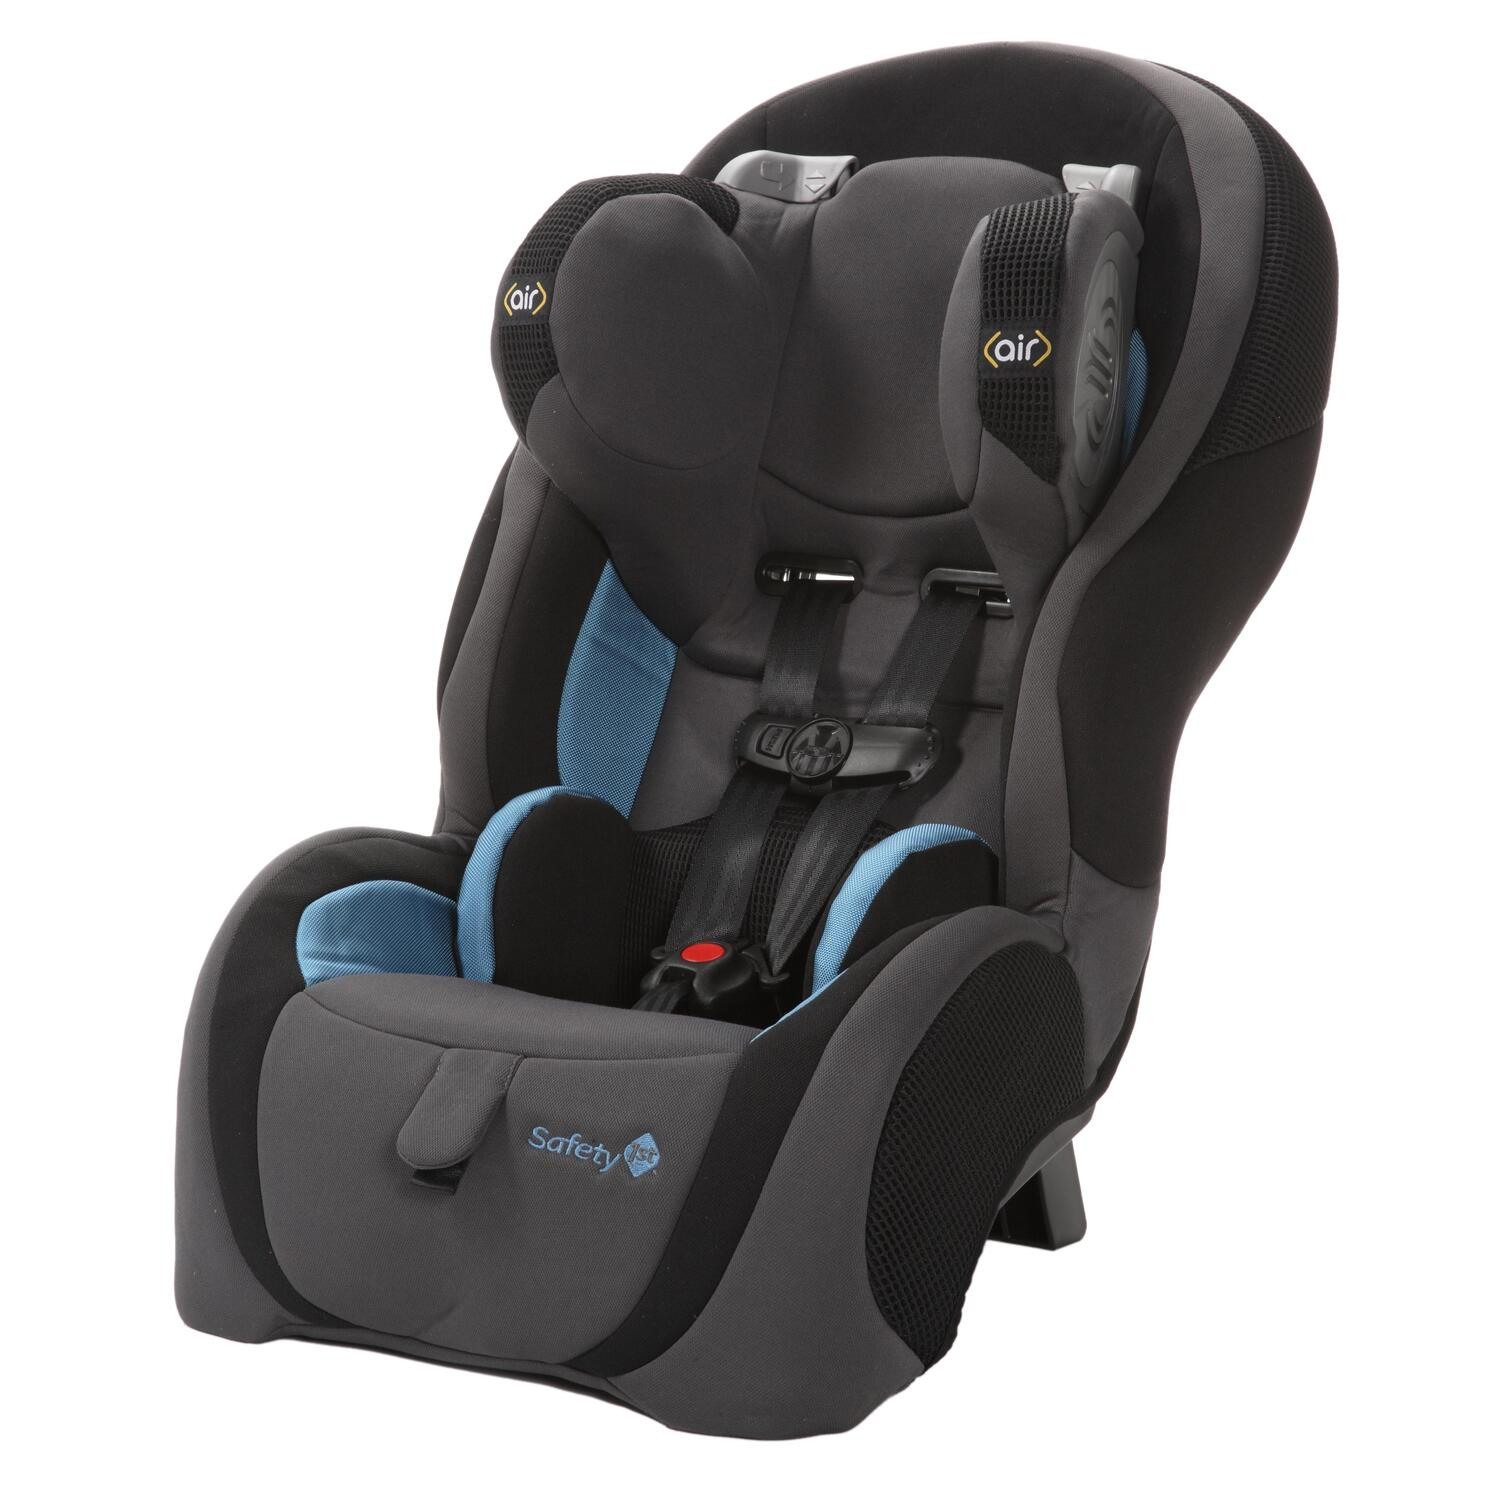 Safety St Car Seat